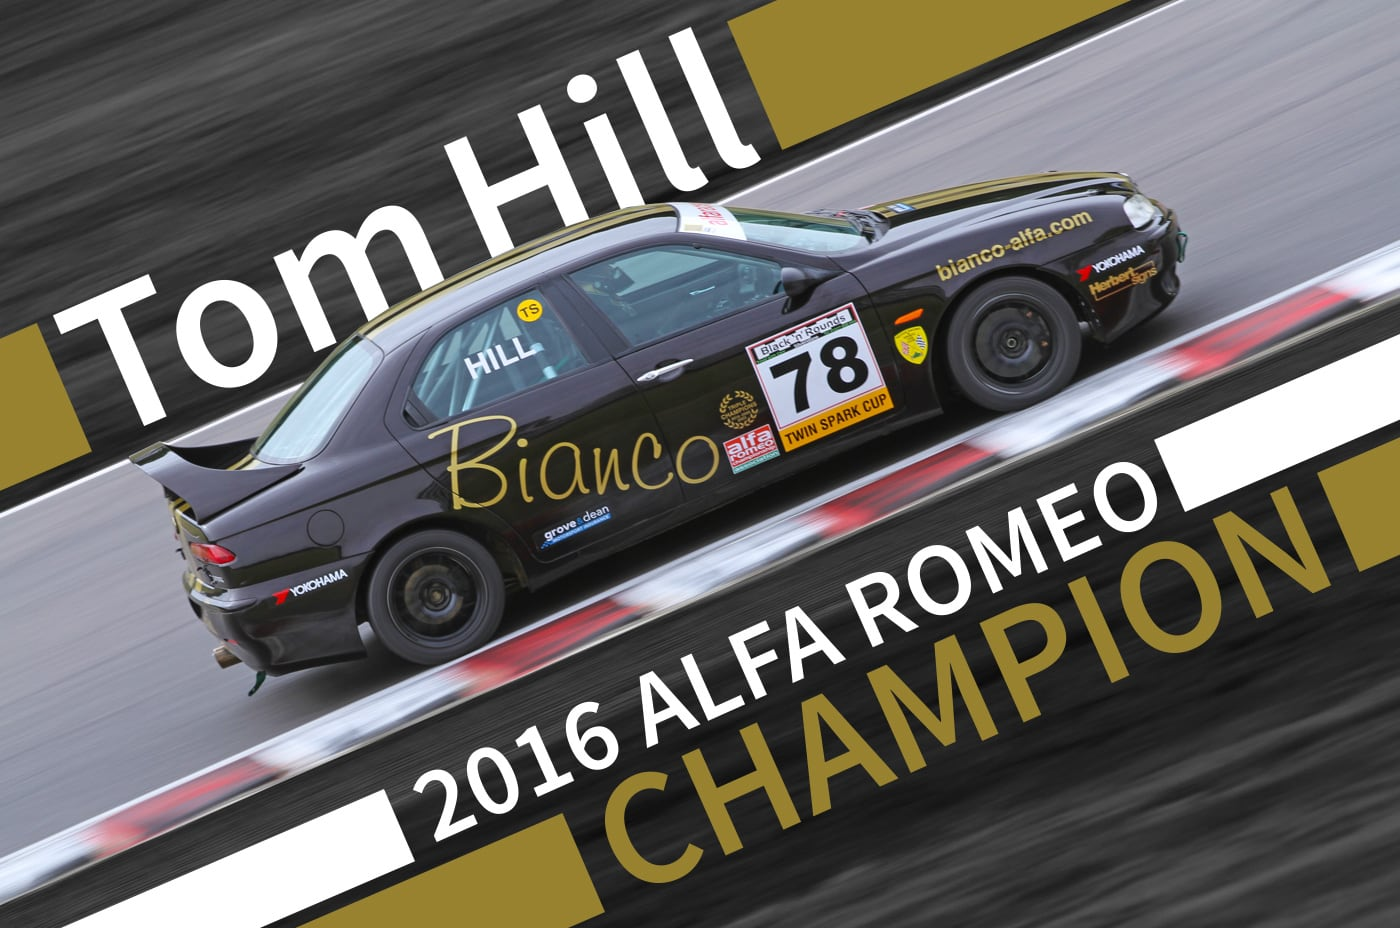 tom-hill-champion-2016